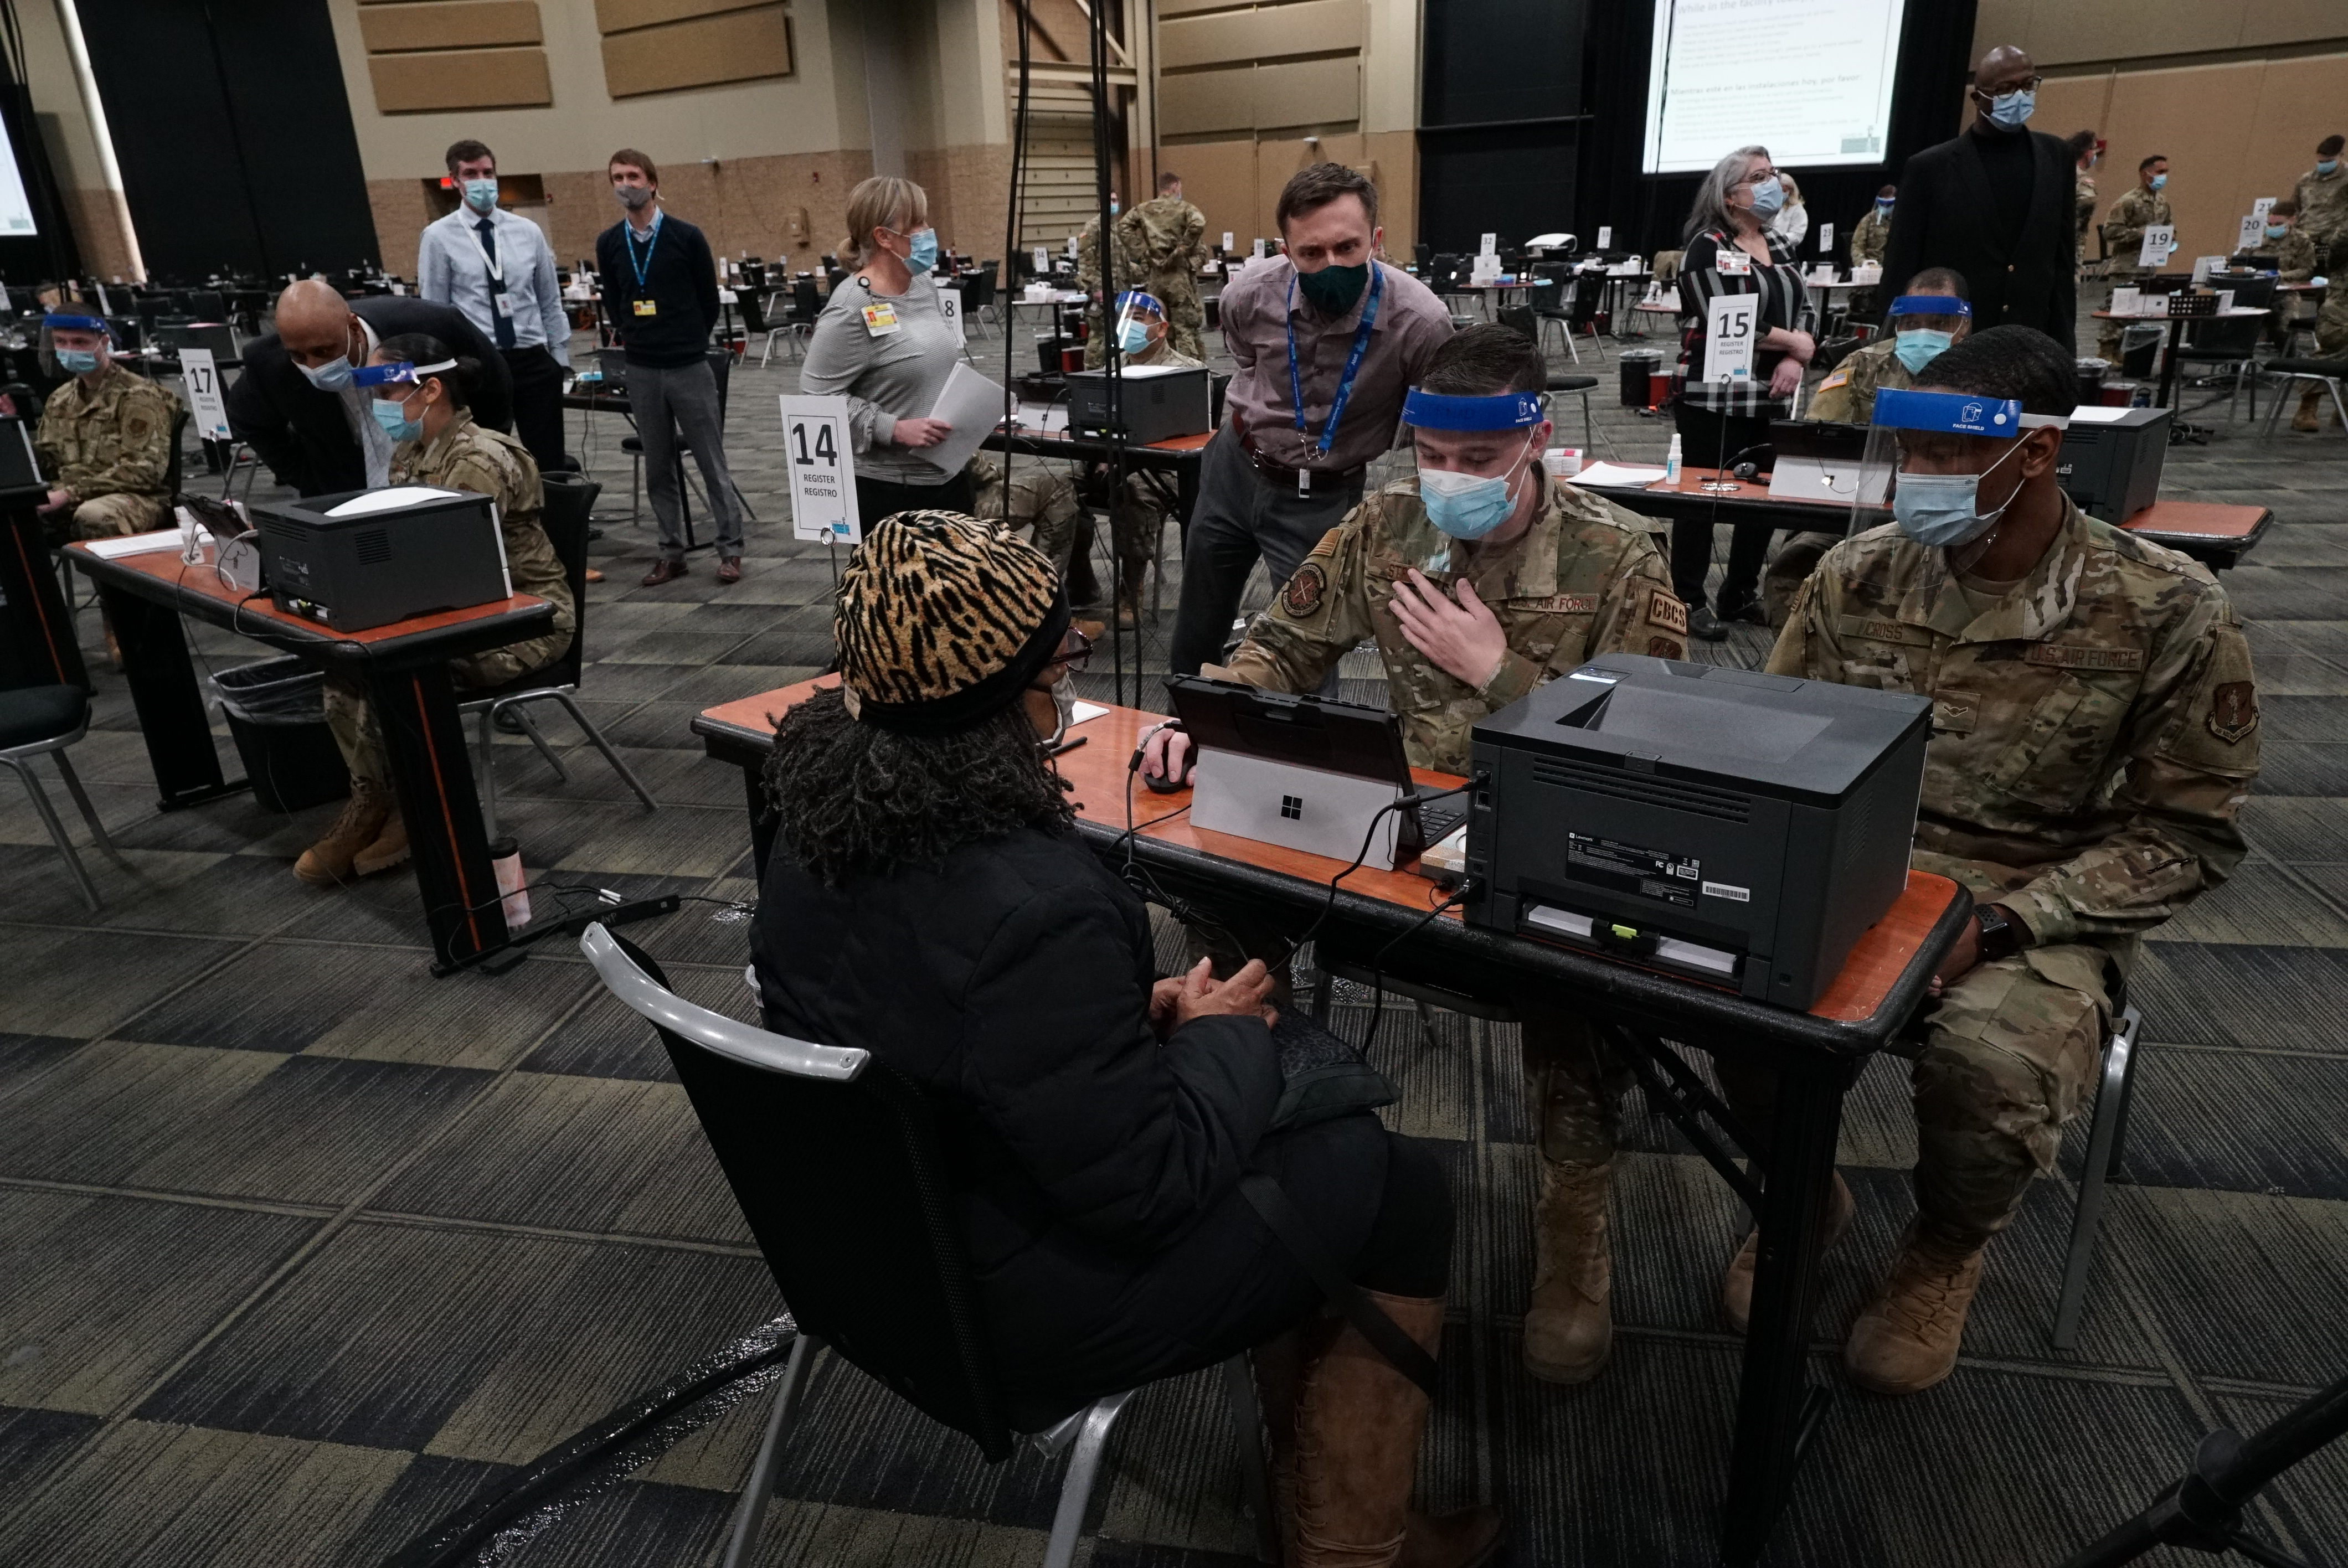 Residents receive COVID-19 vaccines at the Tinley Park Convention Center in January. The mass vaccination site is closing along with two others in suburban Cook County as demand fades.